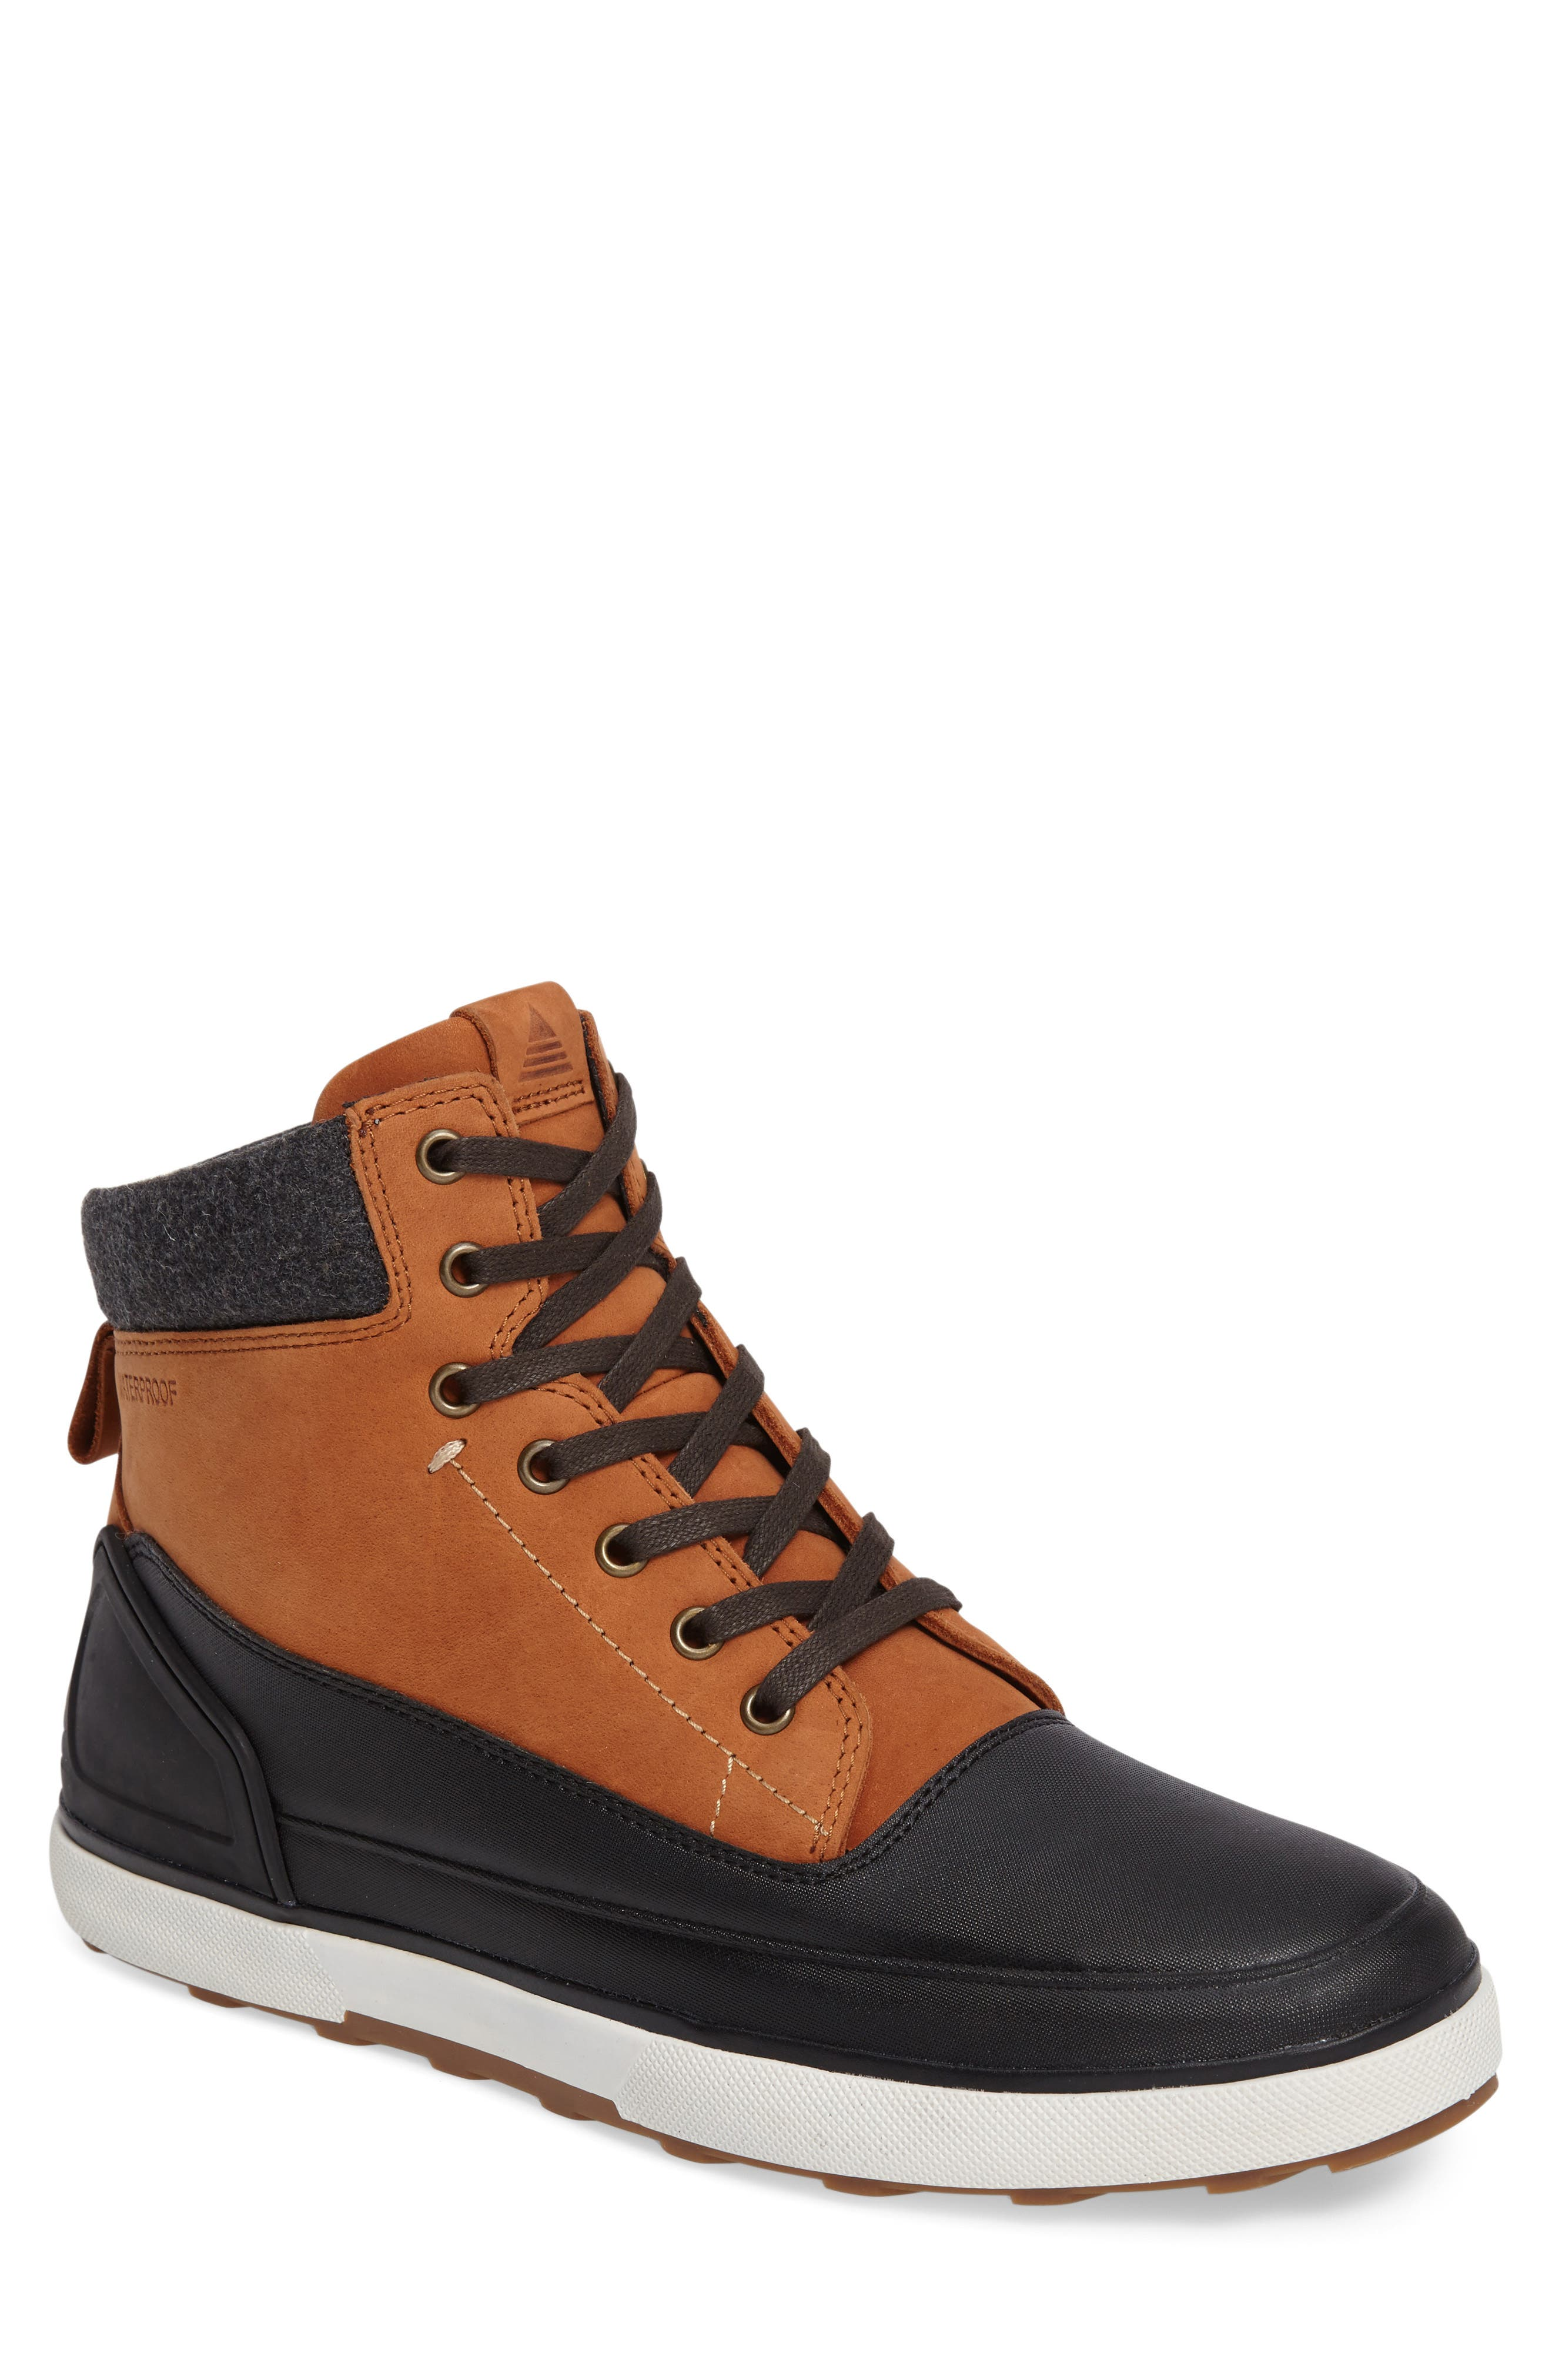 ALDO,                             Benis Boot,                             Main thumbnail 1, color,                             240